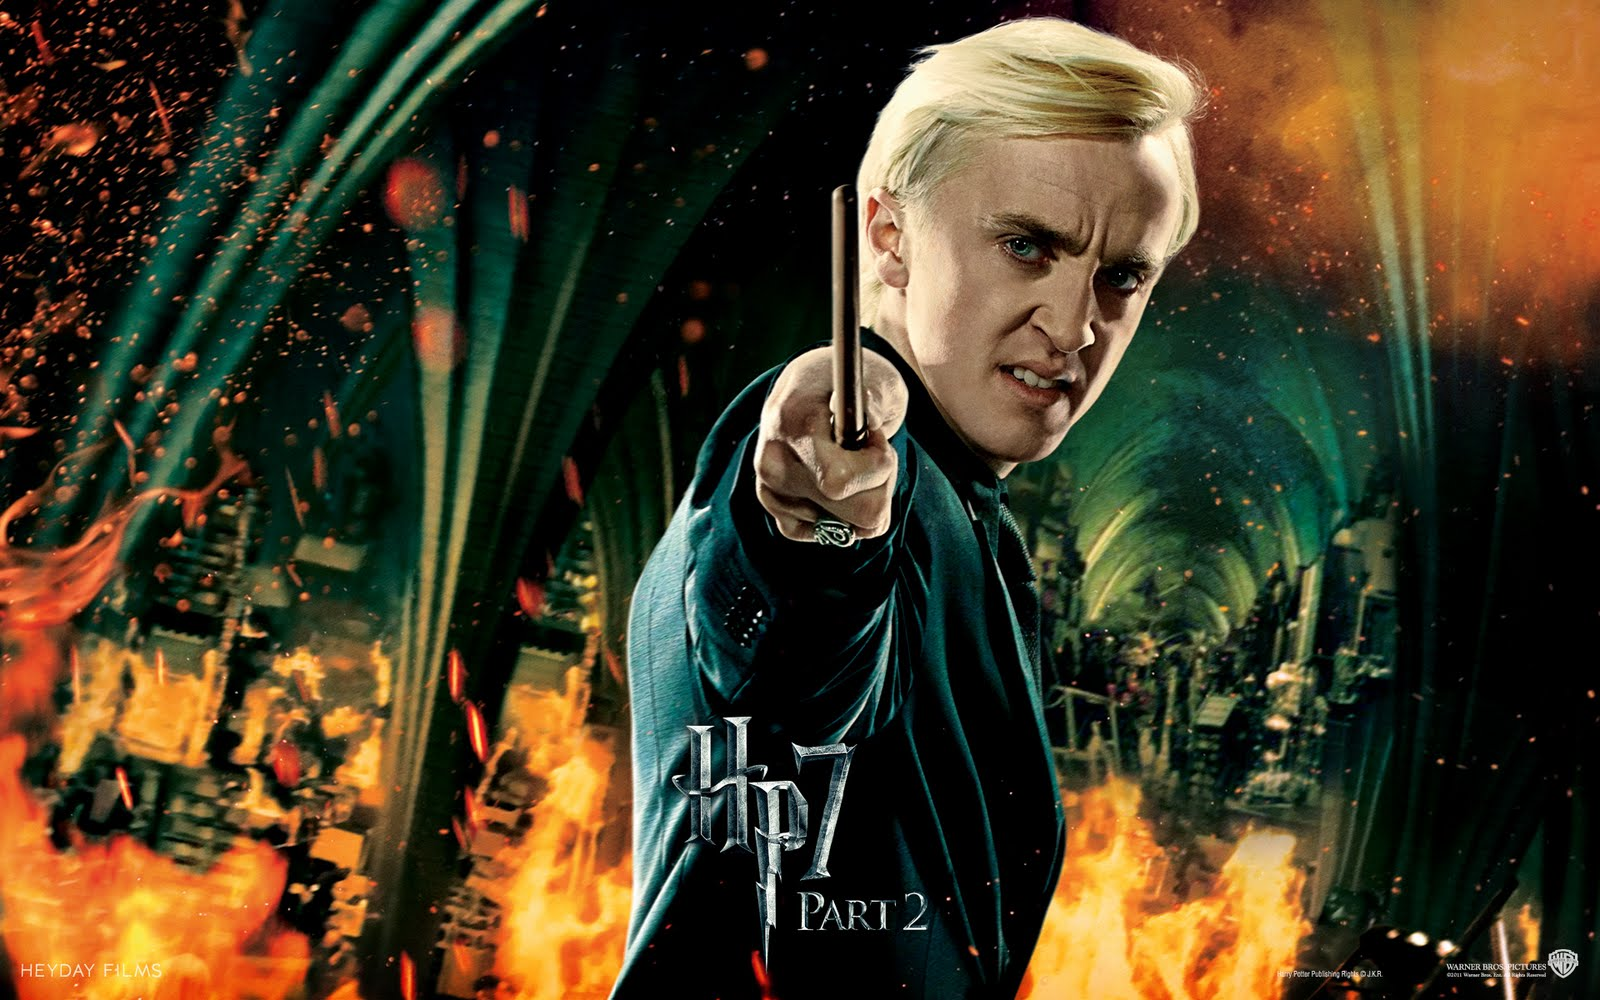 Download Wallpaper Harry Potter Epic - latest?cb\u003d20120102111441  Perfect Image Reference_6776.jpg/revision/latest?cb\u003d20120102111441